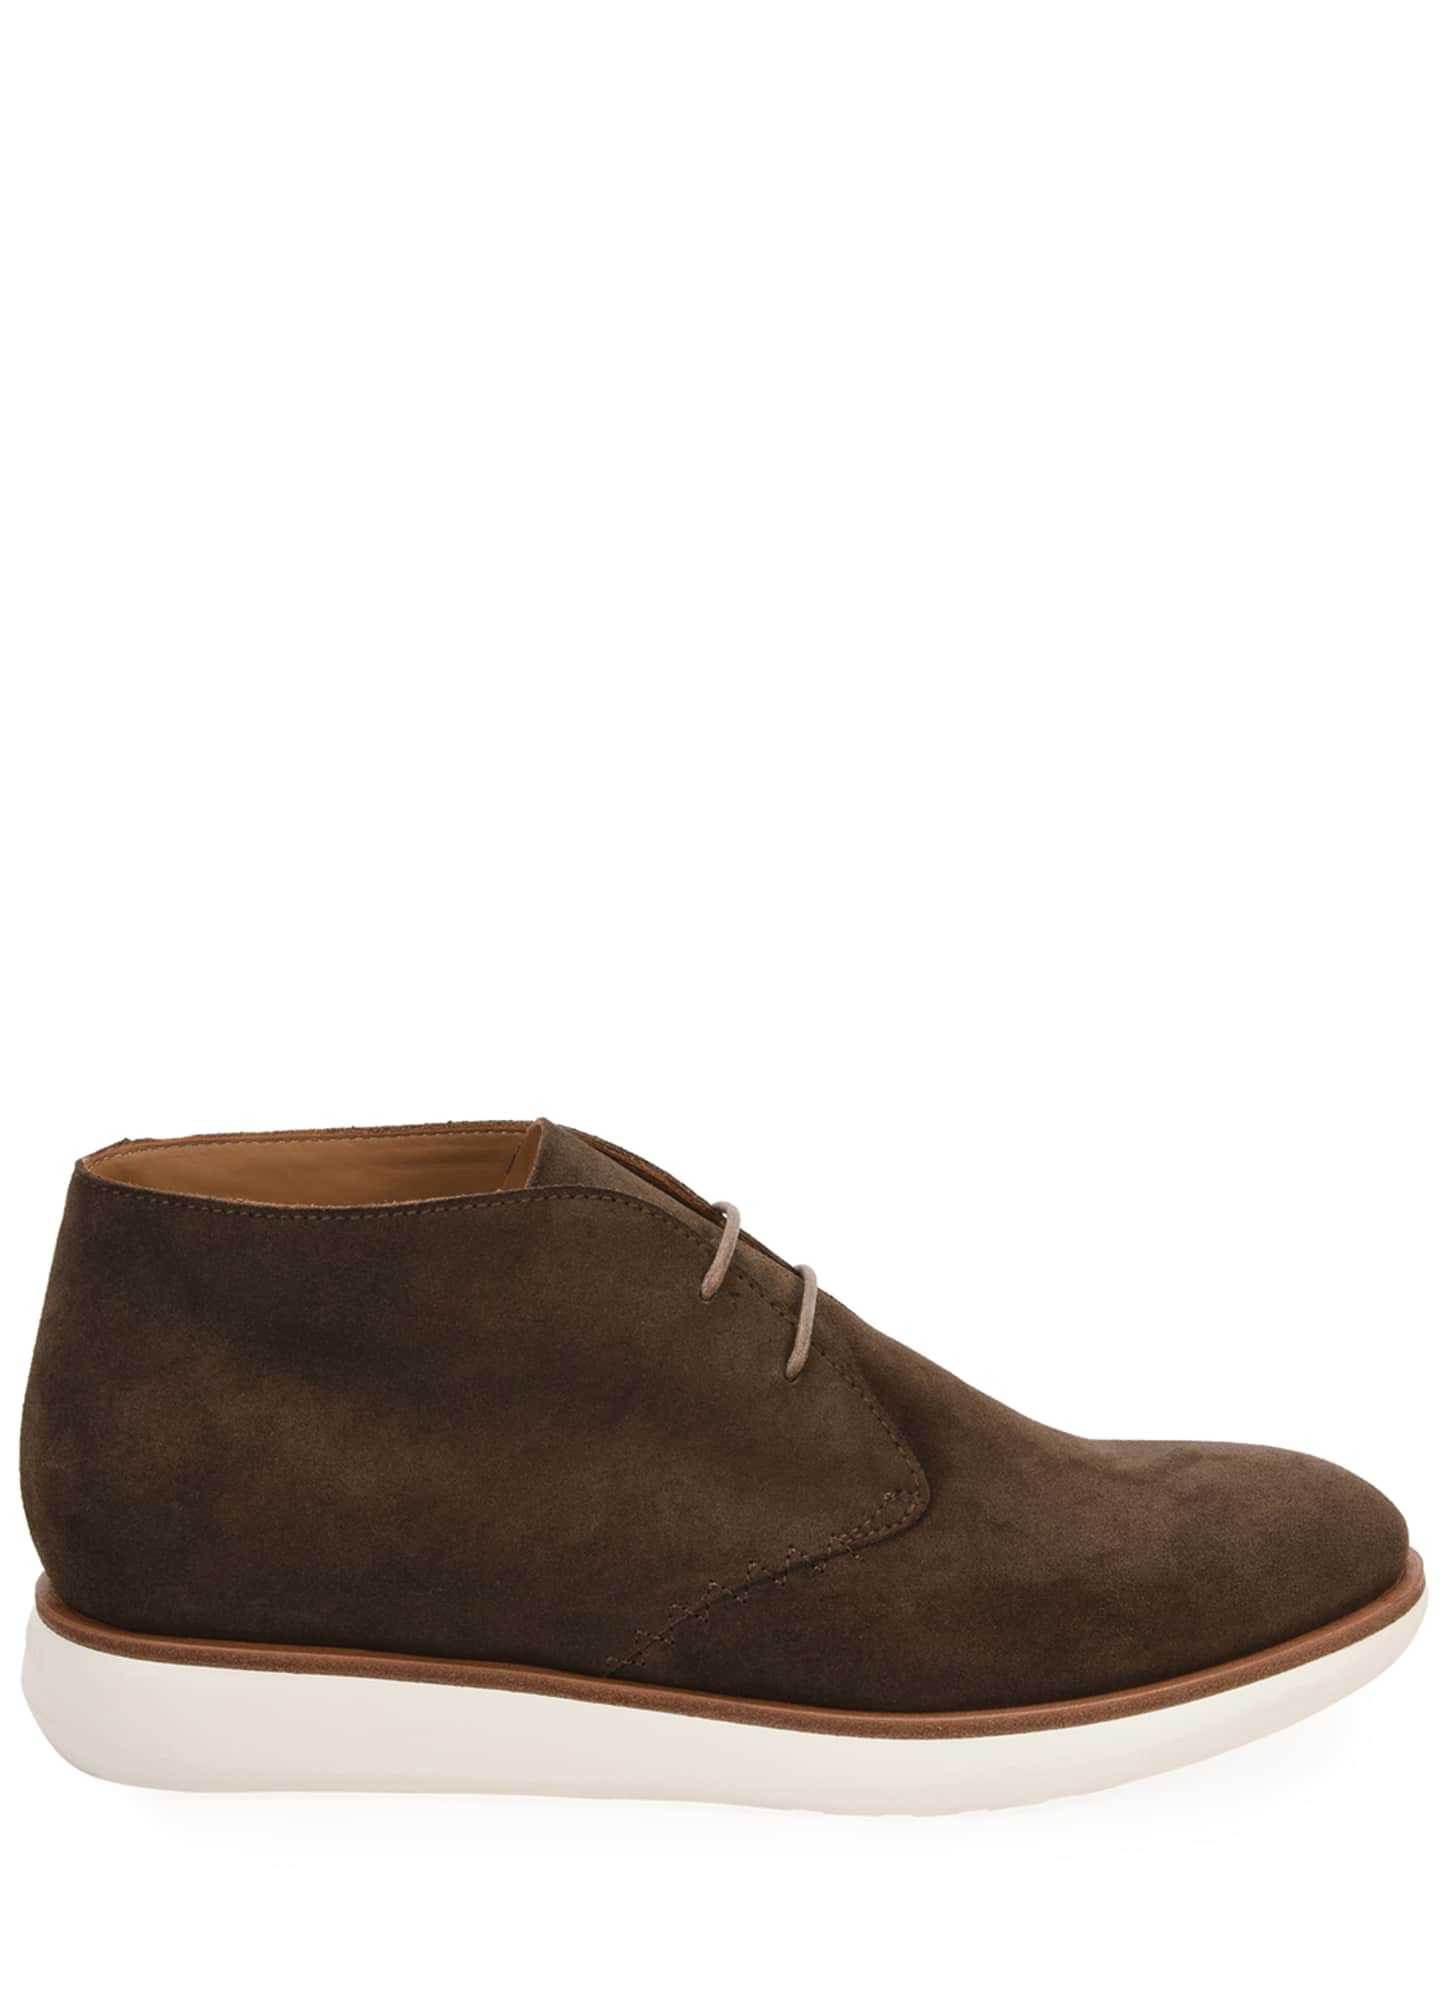 Image 3 of 4: Men's Lightweight Suede Chukka Boots